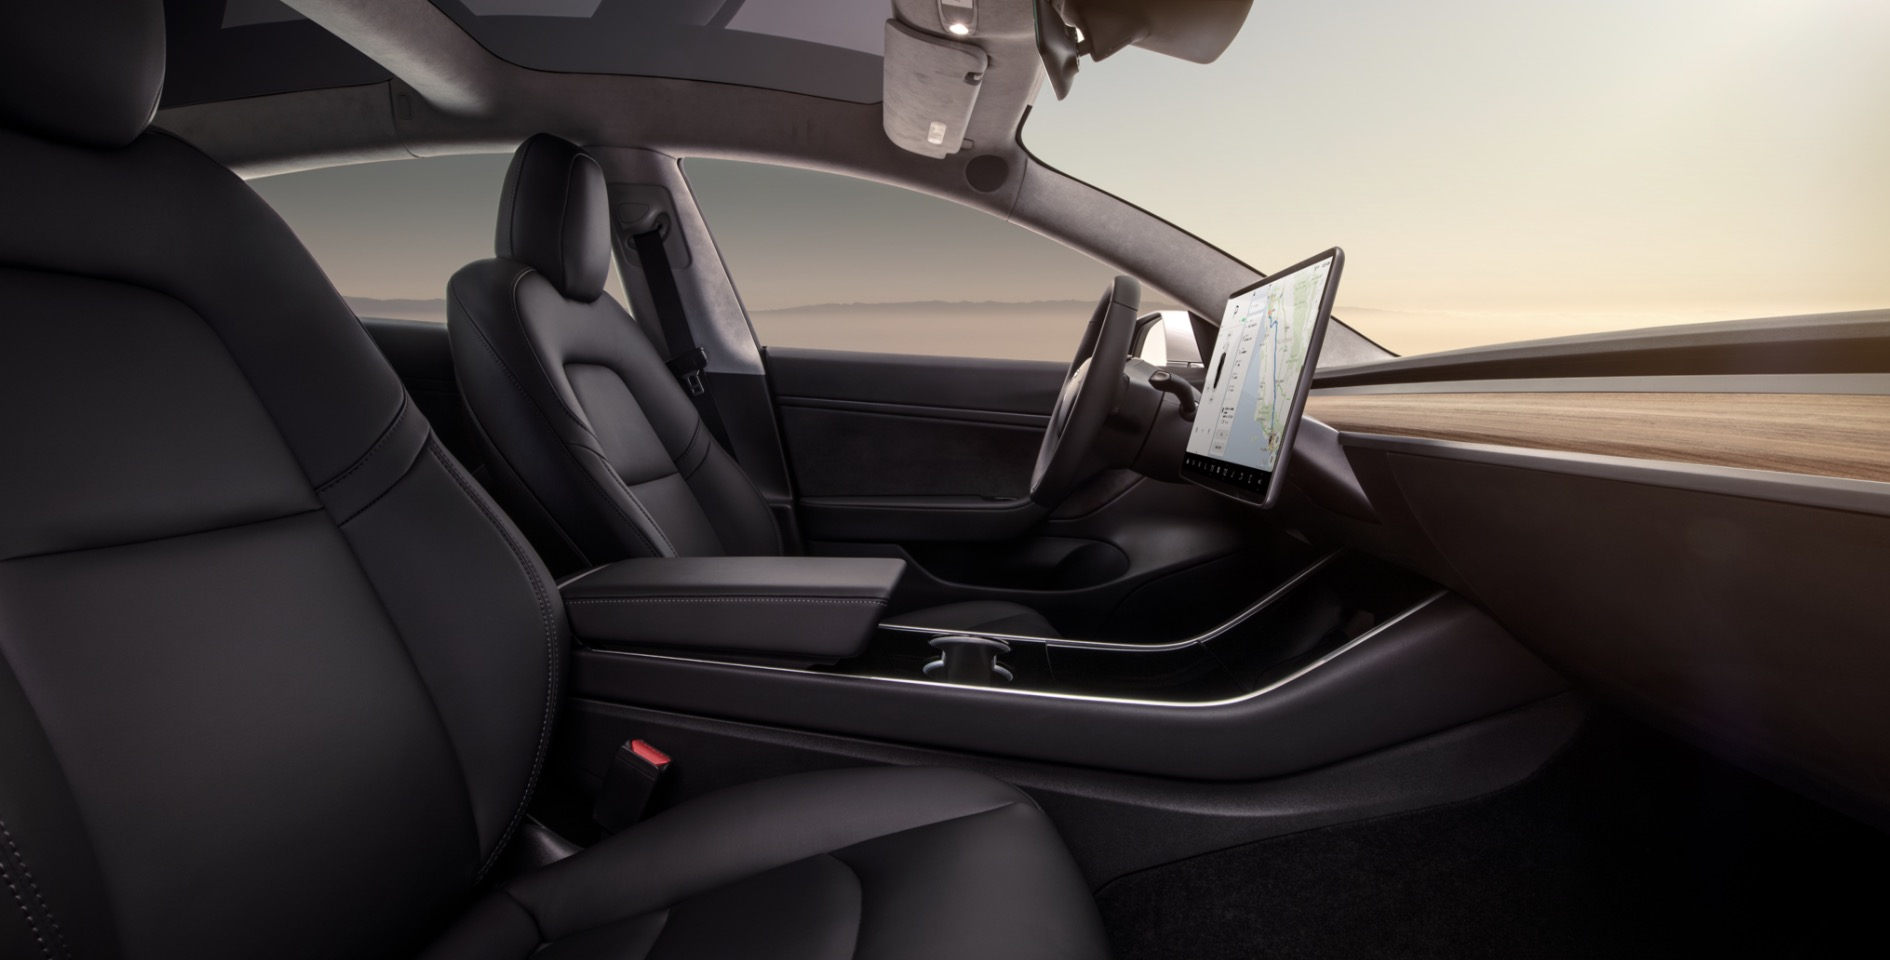 First Look At Tesla Model 3 With New White Interior For Performance Version Electrek